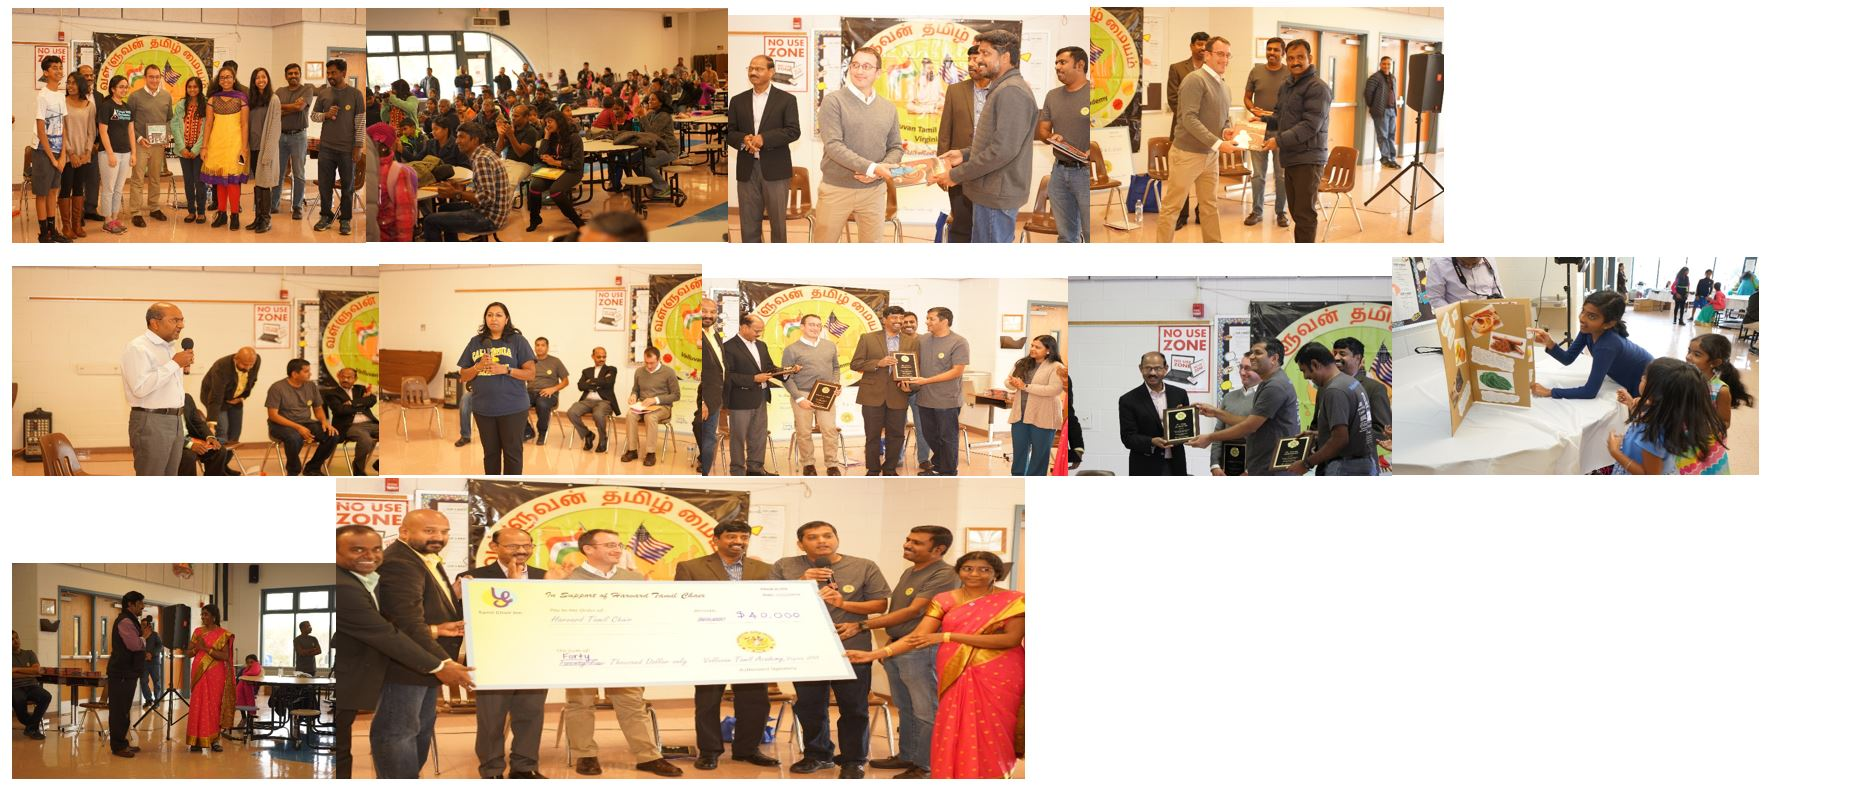 Thanks for supporting the Tamil school